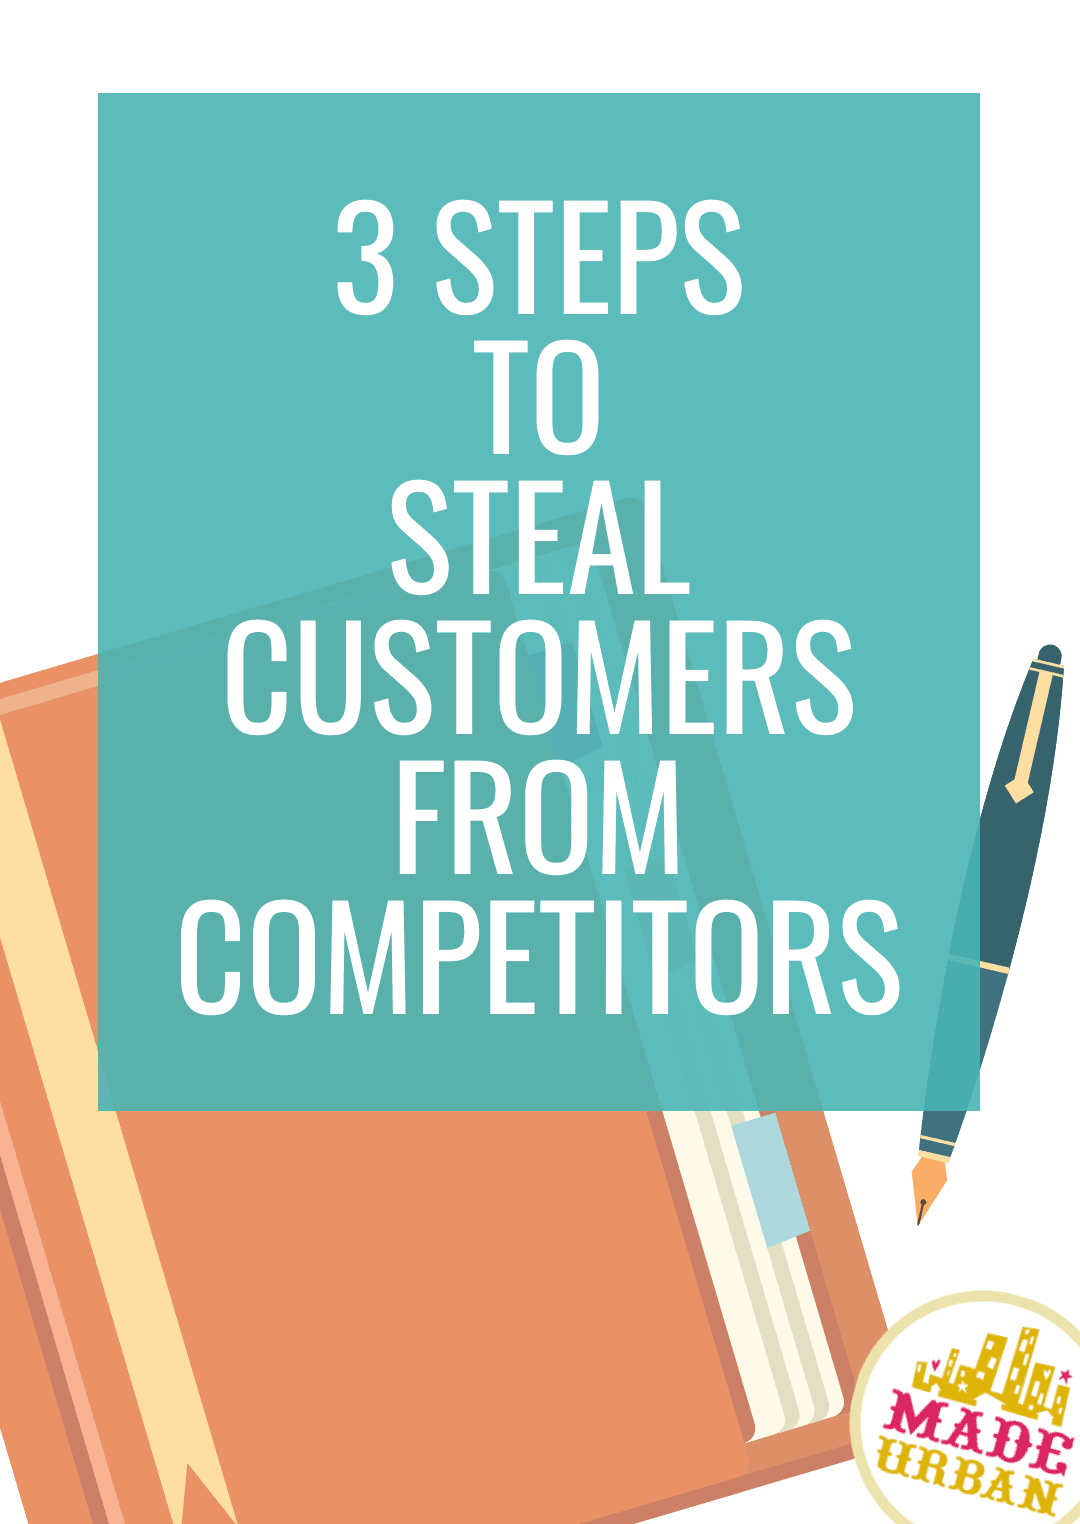 3 Steps to Steal Customers from Competitors